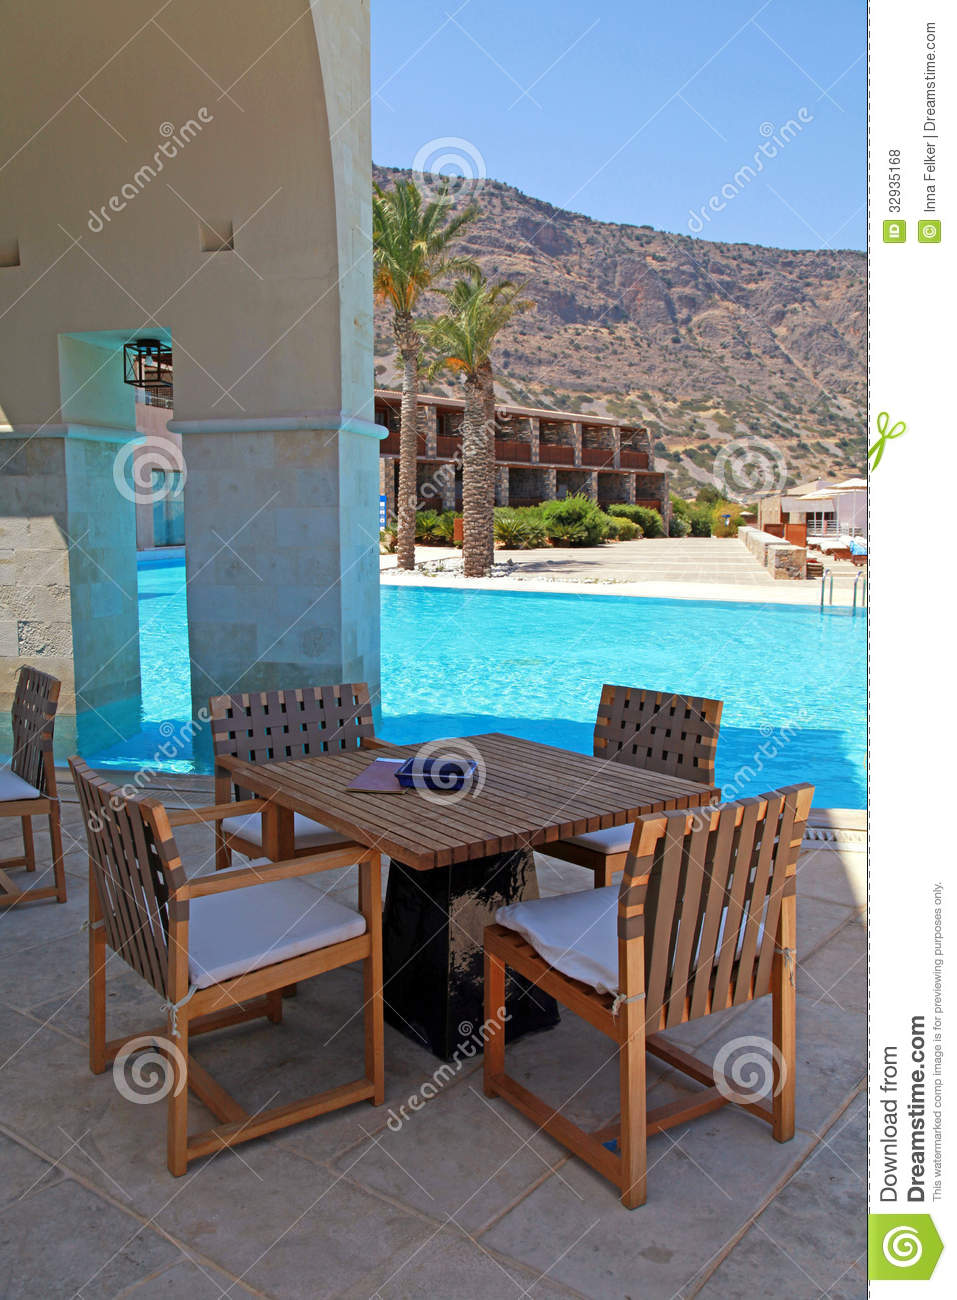 Summer Hotel Terrace With Pool And Outdoor Furniture(Greece) Royalty Free Stock Photos - Image ...